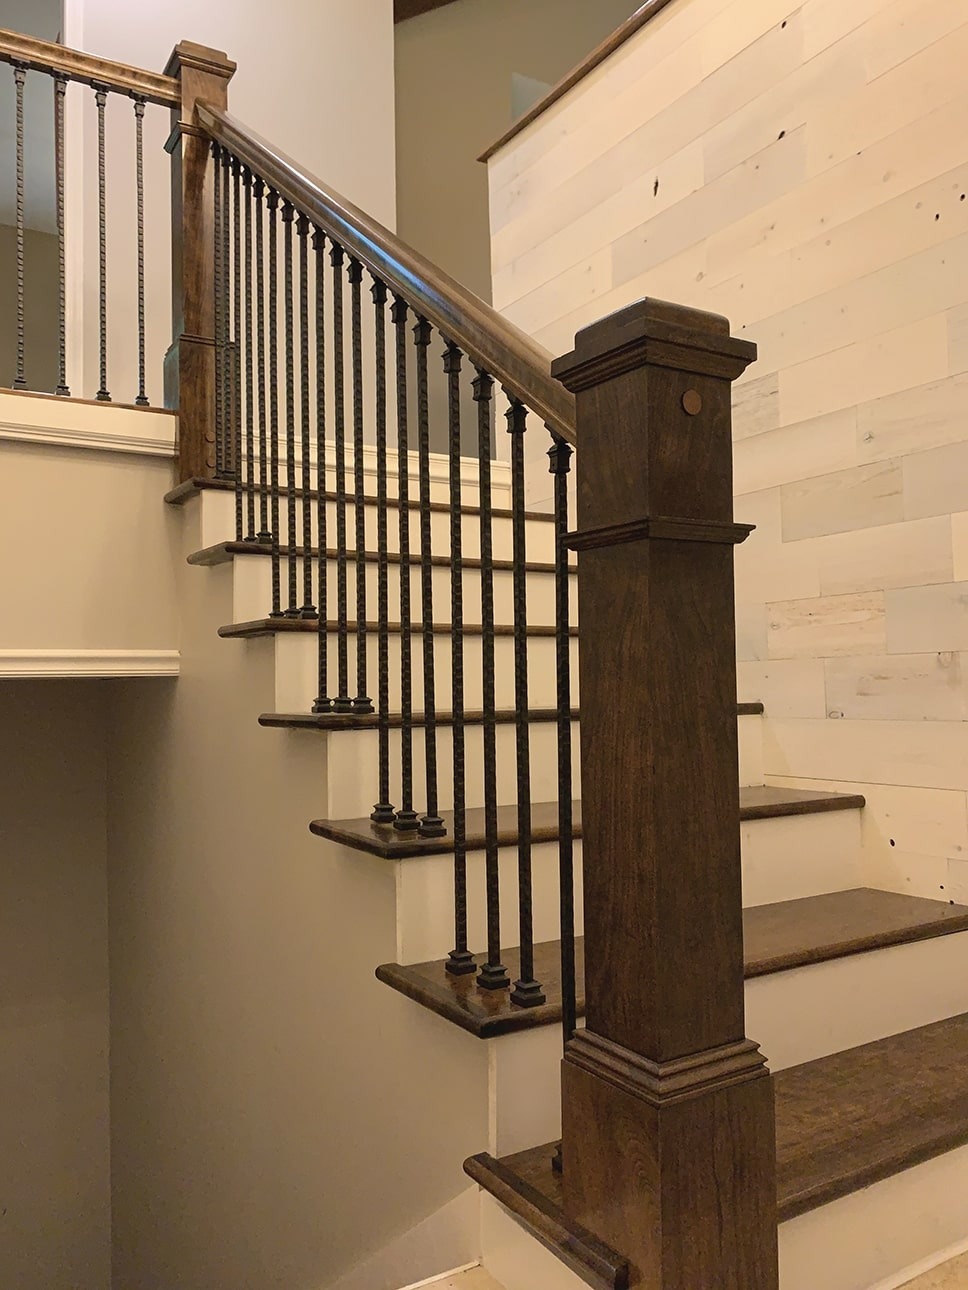 Diy Stair Rail Installation Extreme How To   Replacing Wood Balusters With Iron   Staircase   Stair Spindles   Stair Parts   Handrail   Stair Railing